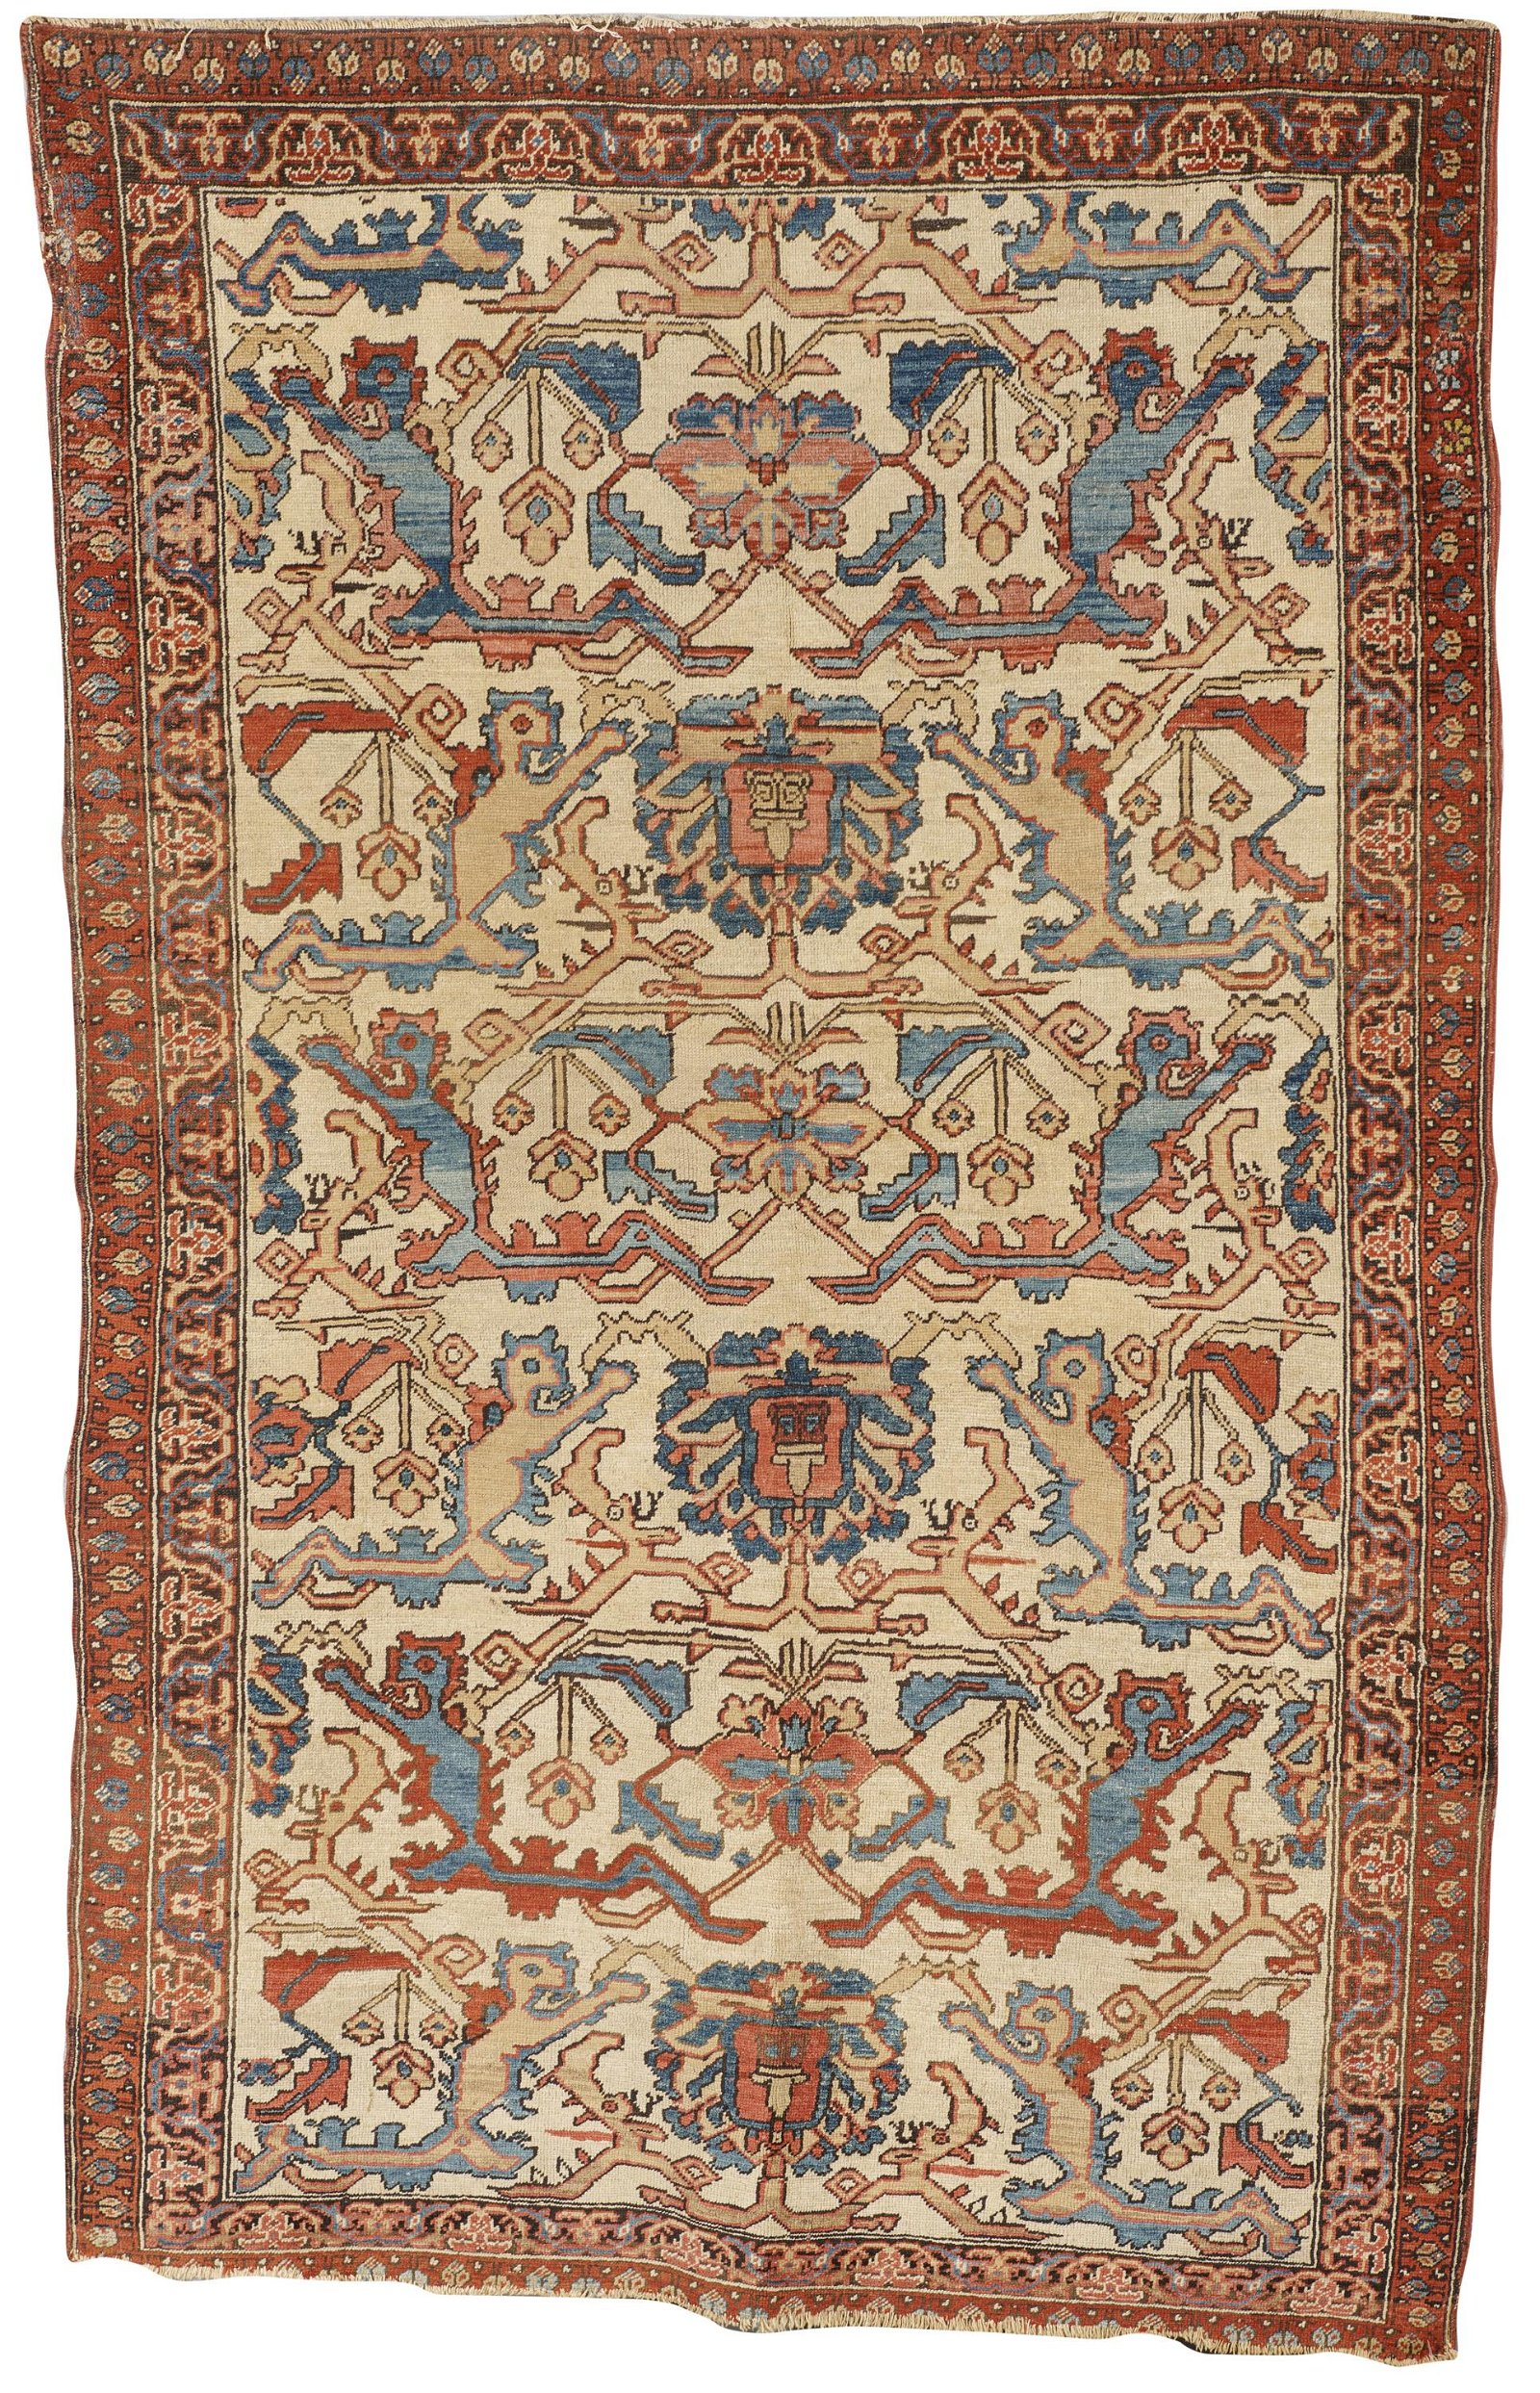 Bakshaish Animal Rug, Persia, last quarter 19th century;